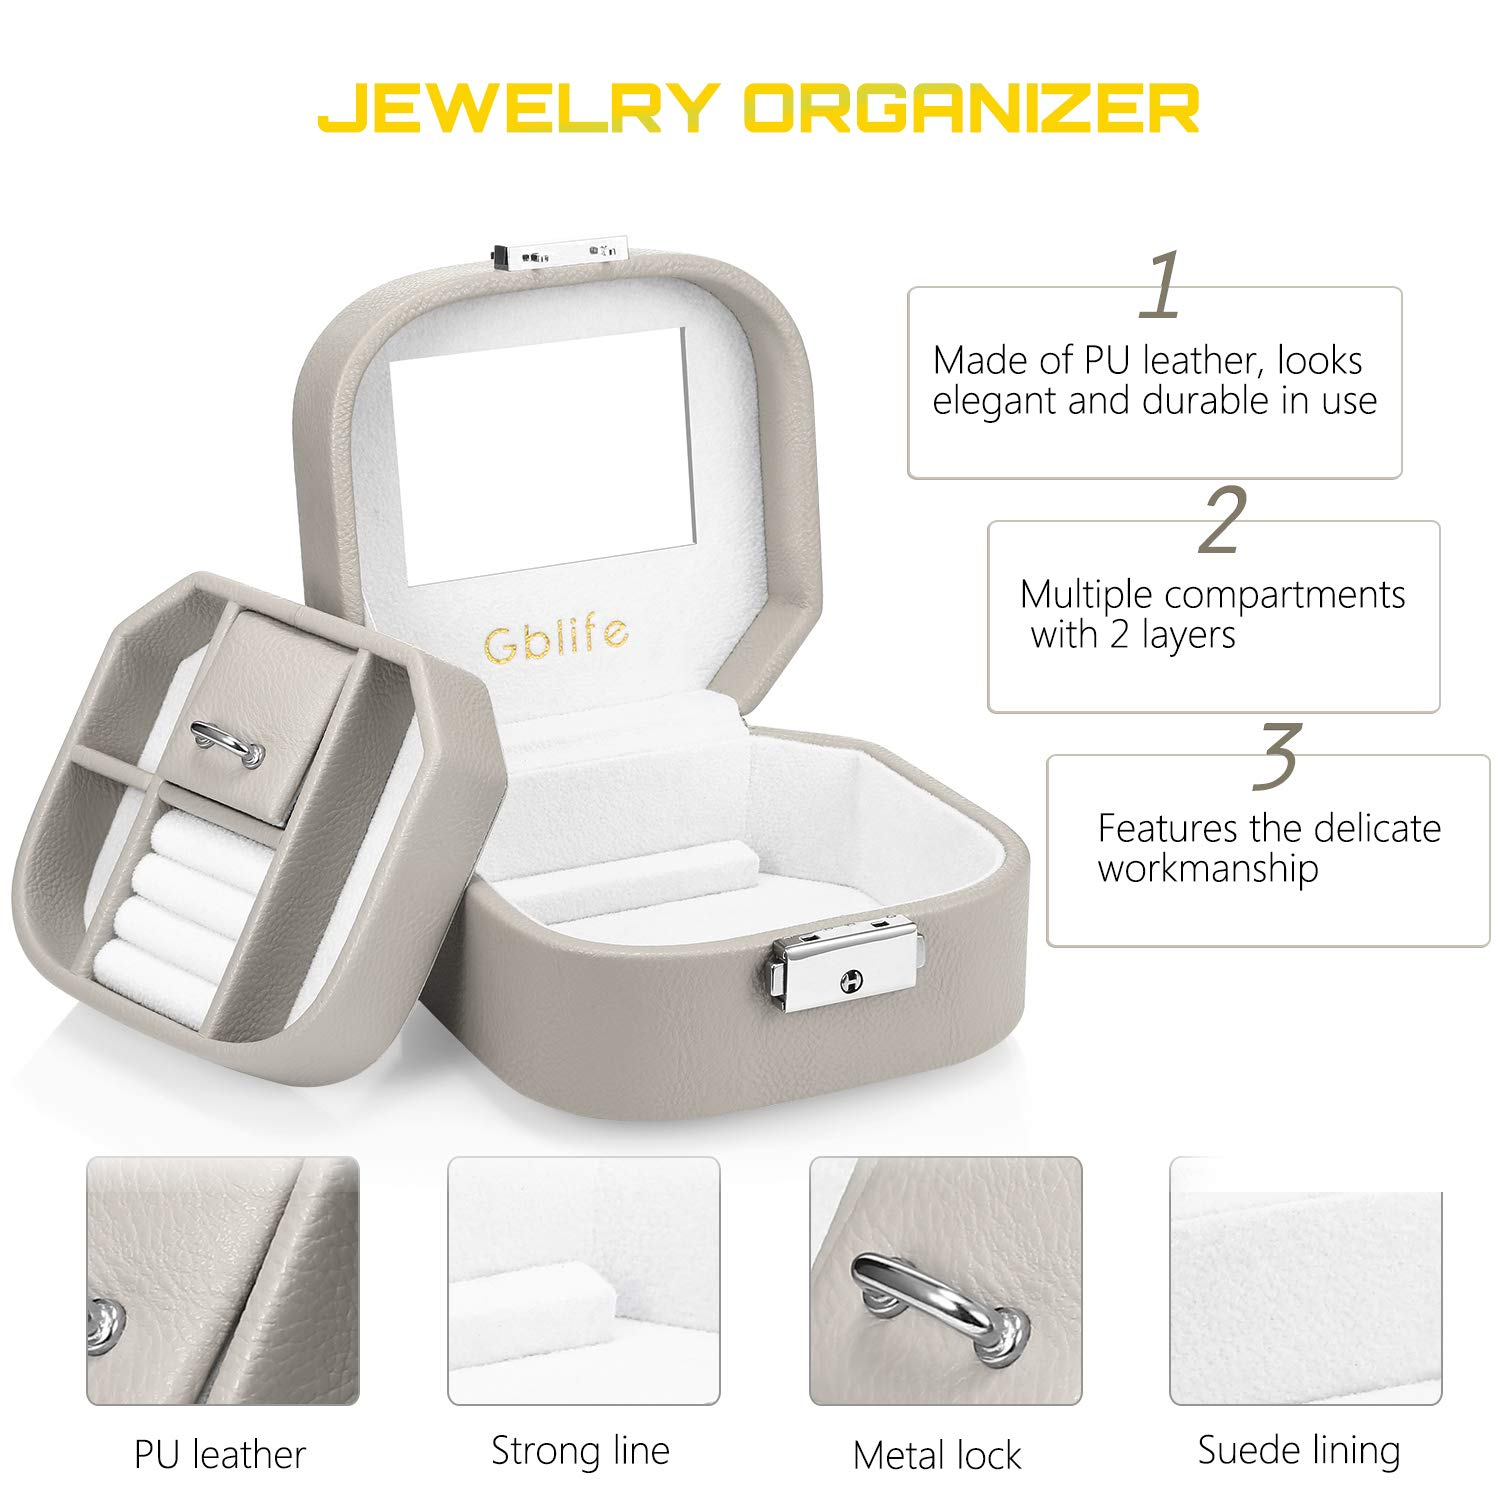 GBlife Jewellery Box, Jewel Box Organiser Display Case PU Leather Woman, Double Layers 5 Compartments, Storage Box Necklaces, Bracelets, Earrings, Hairpins, Cufflinks (Grey)